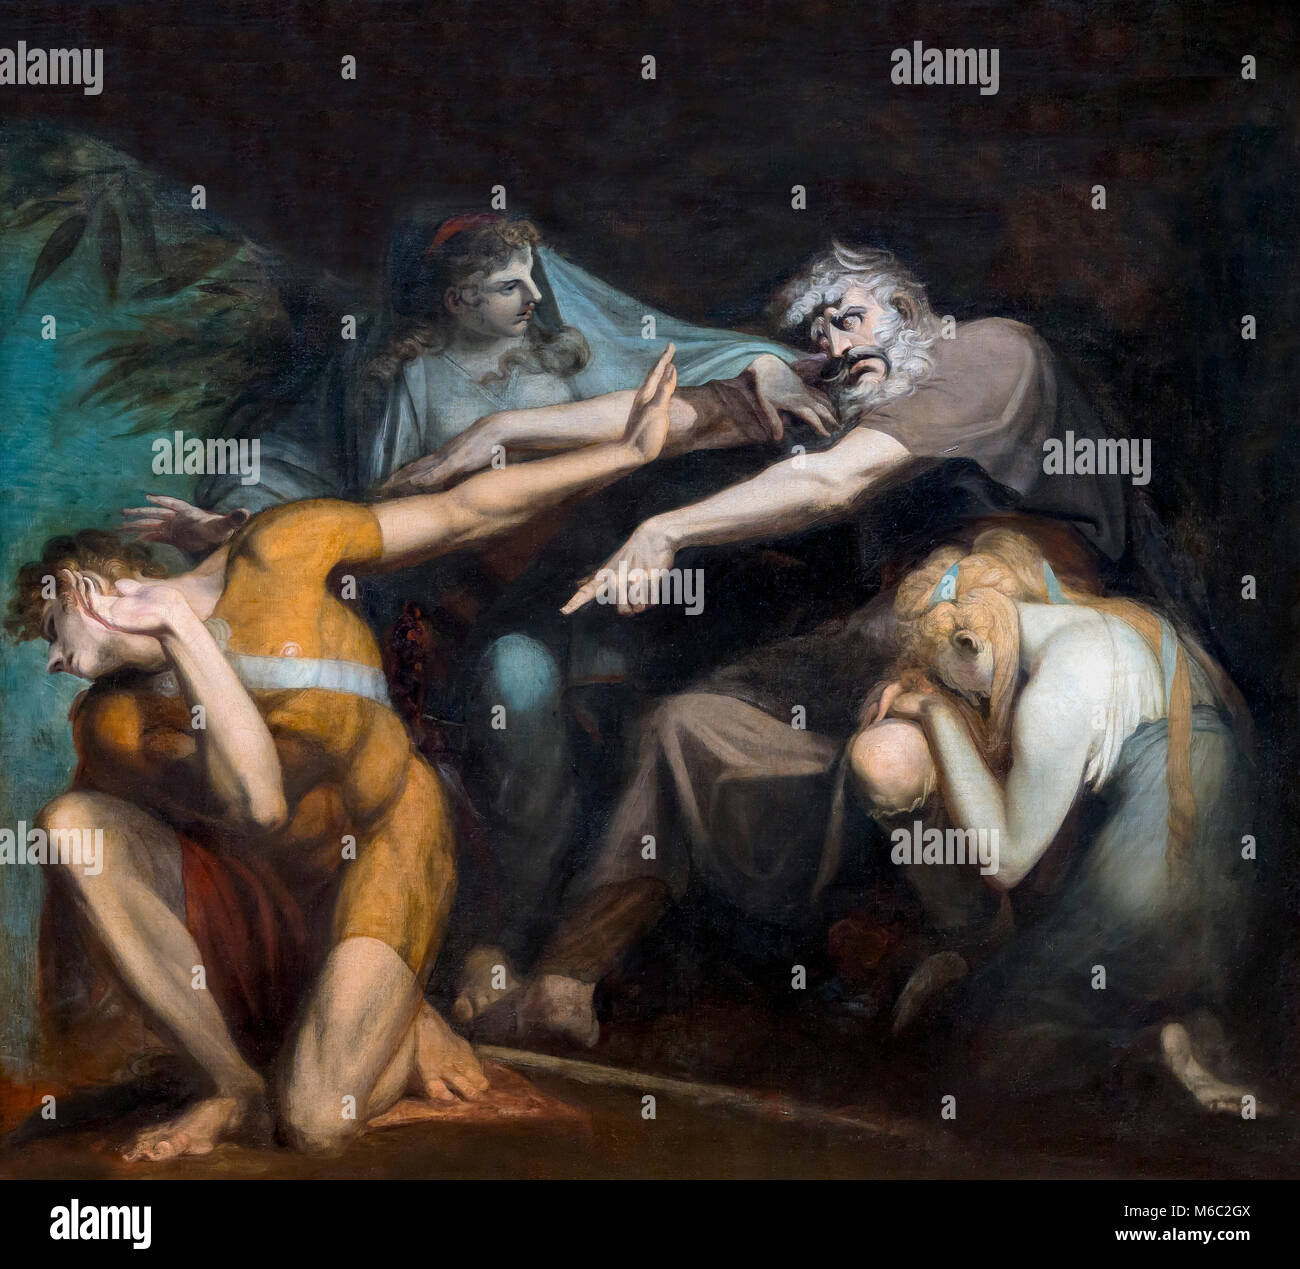 Oedipus Cursing His Son, Polynices, Henry Fuseli, 1786, National Gallery of Art, Washington DC, USA, North America - Stock Image